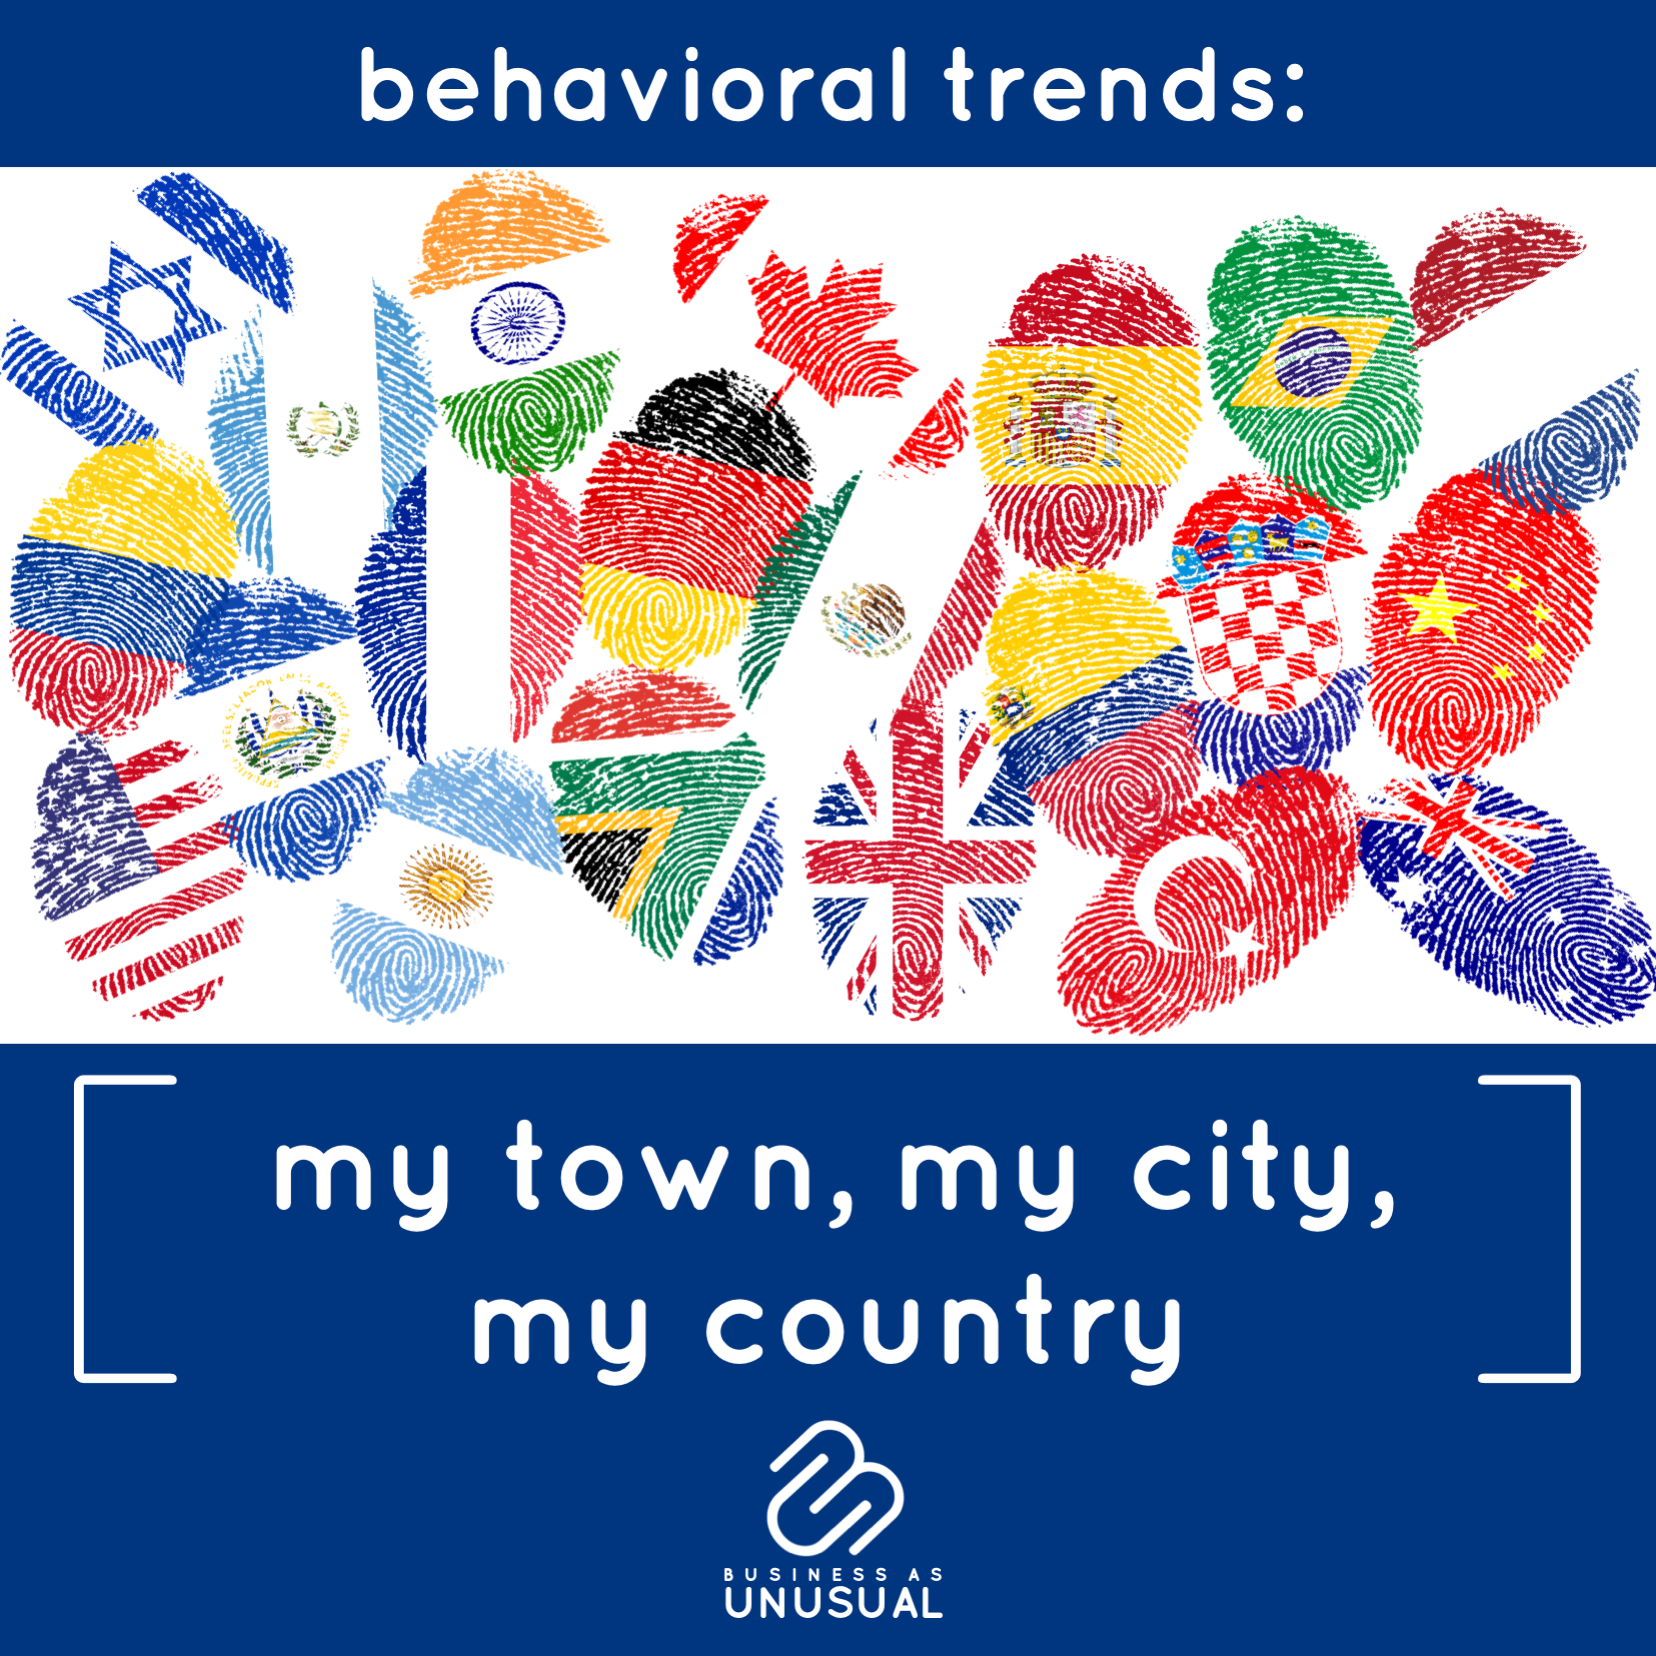 Behavioral Trends: My town My City My Country